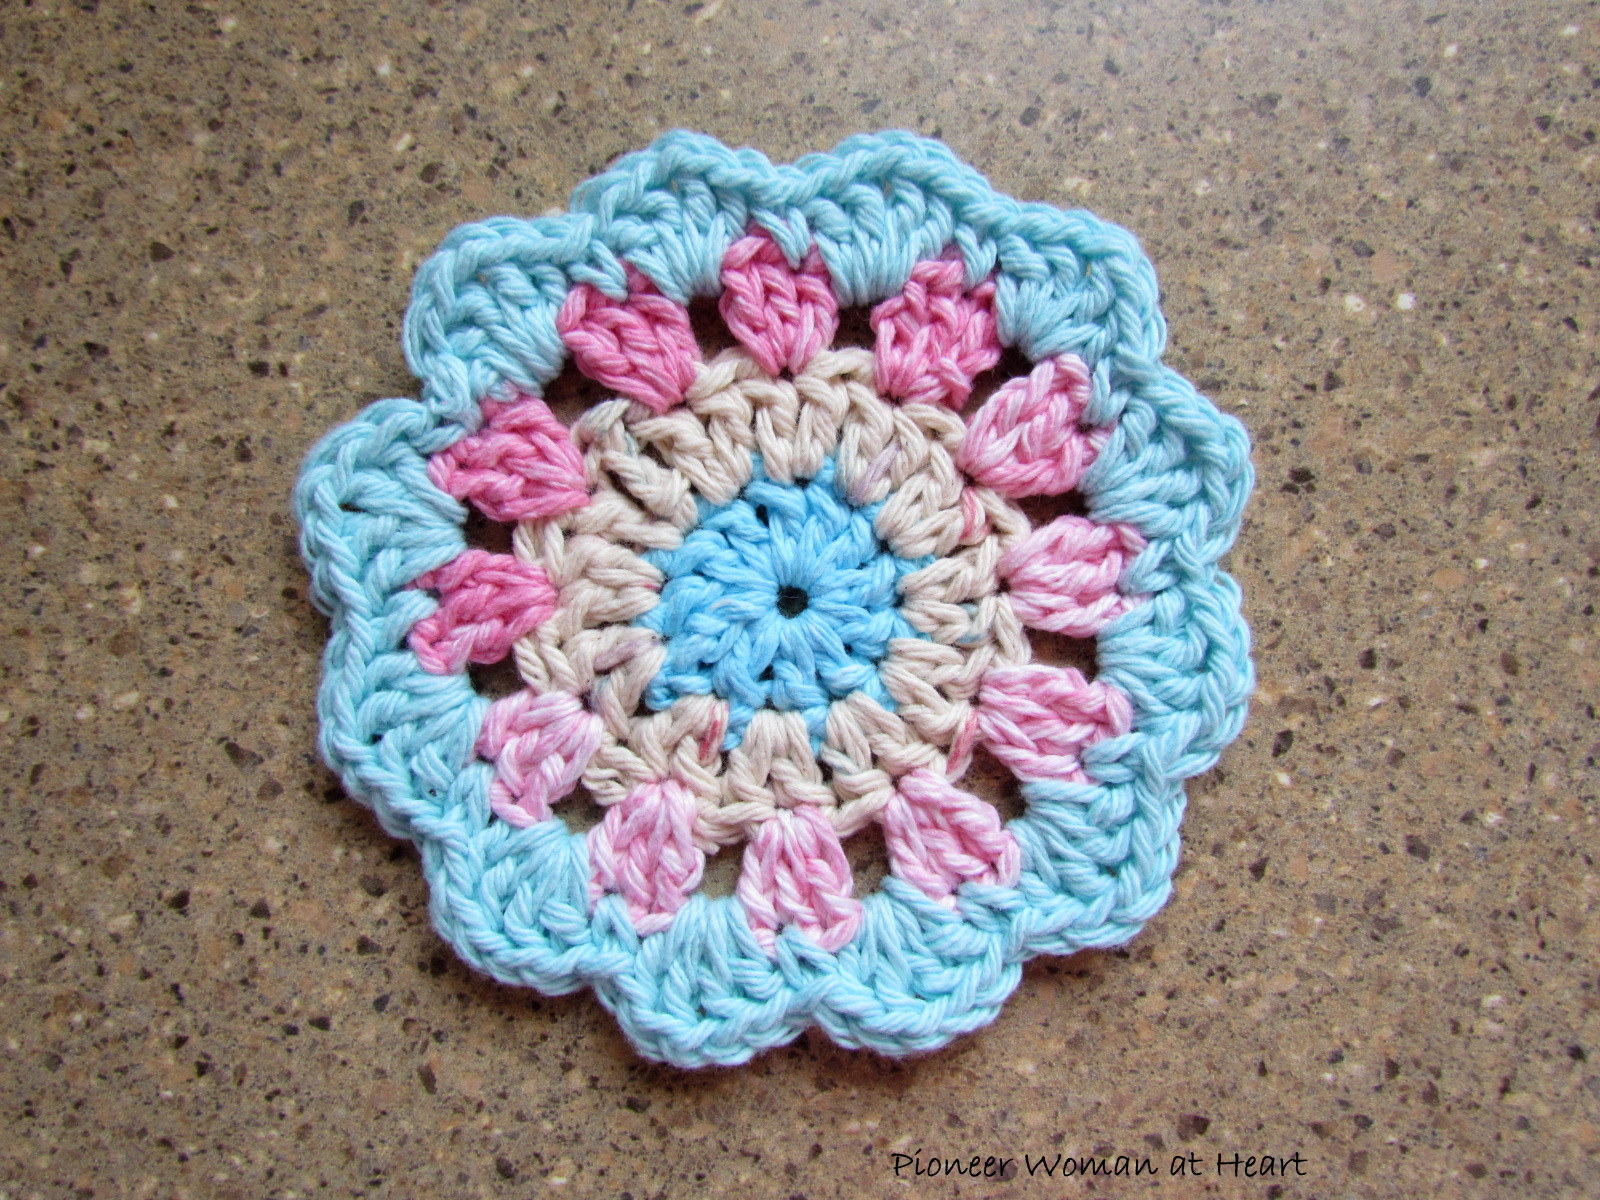 Pioneer Woman at Heart: The Crocheted Flower Cup/Mug Coaster Story